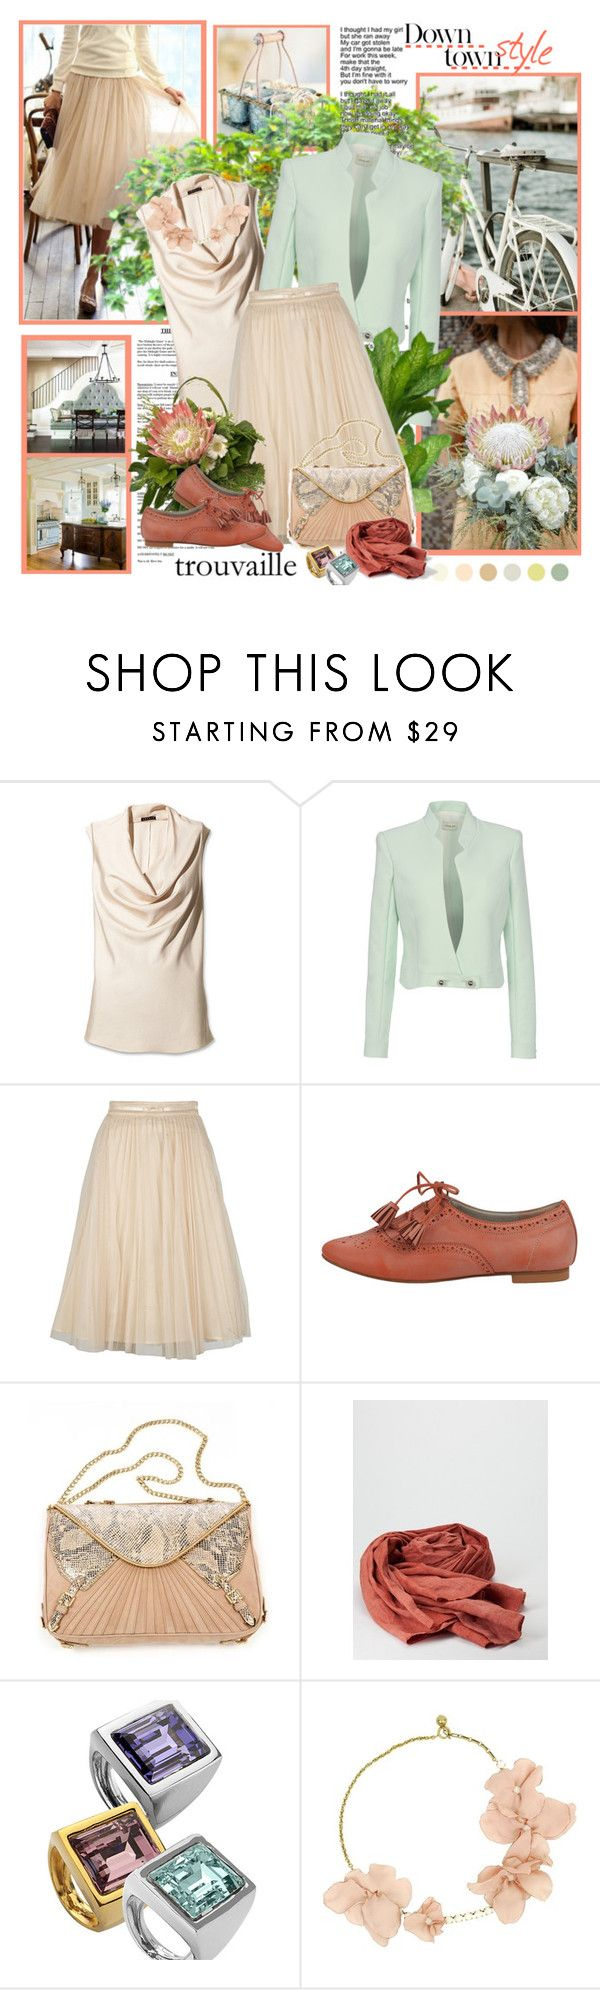 """""""trouvaille"""" by helleka ❤ liked on Polyvore featuring Keen Footwear, PLANT, Theory, Thierry Mugler, Naf Naf, Rebecca Minkoff, Kenneth Jay Lane, Lanvin, statement necklaces and pleated skirts"""